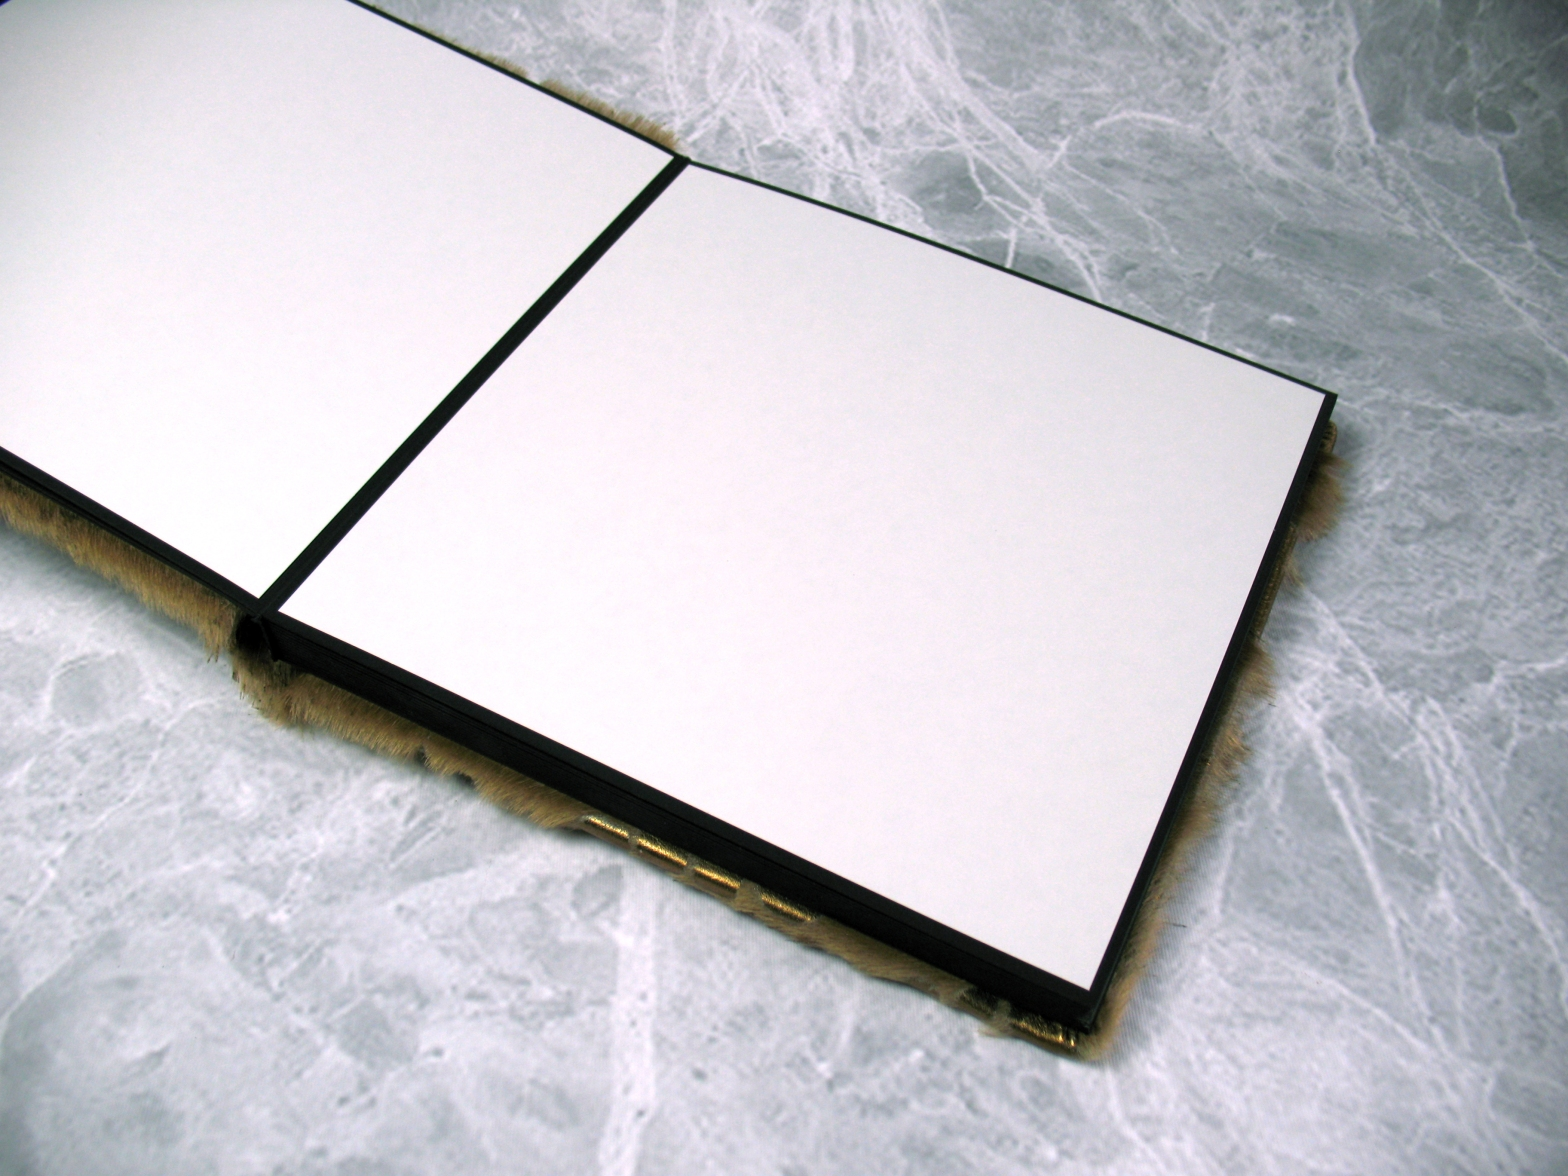 Self-adhesive DIY Photo Album for professional portrait photographers. Elements by Finao.